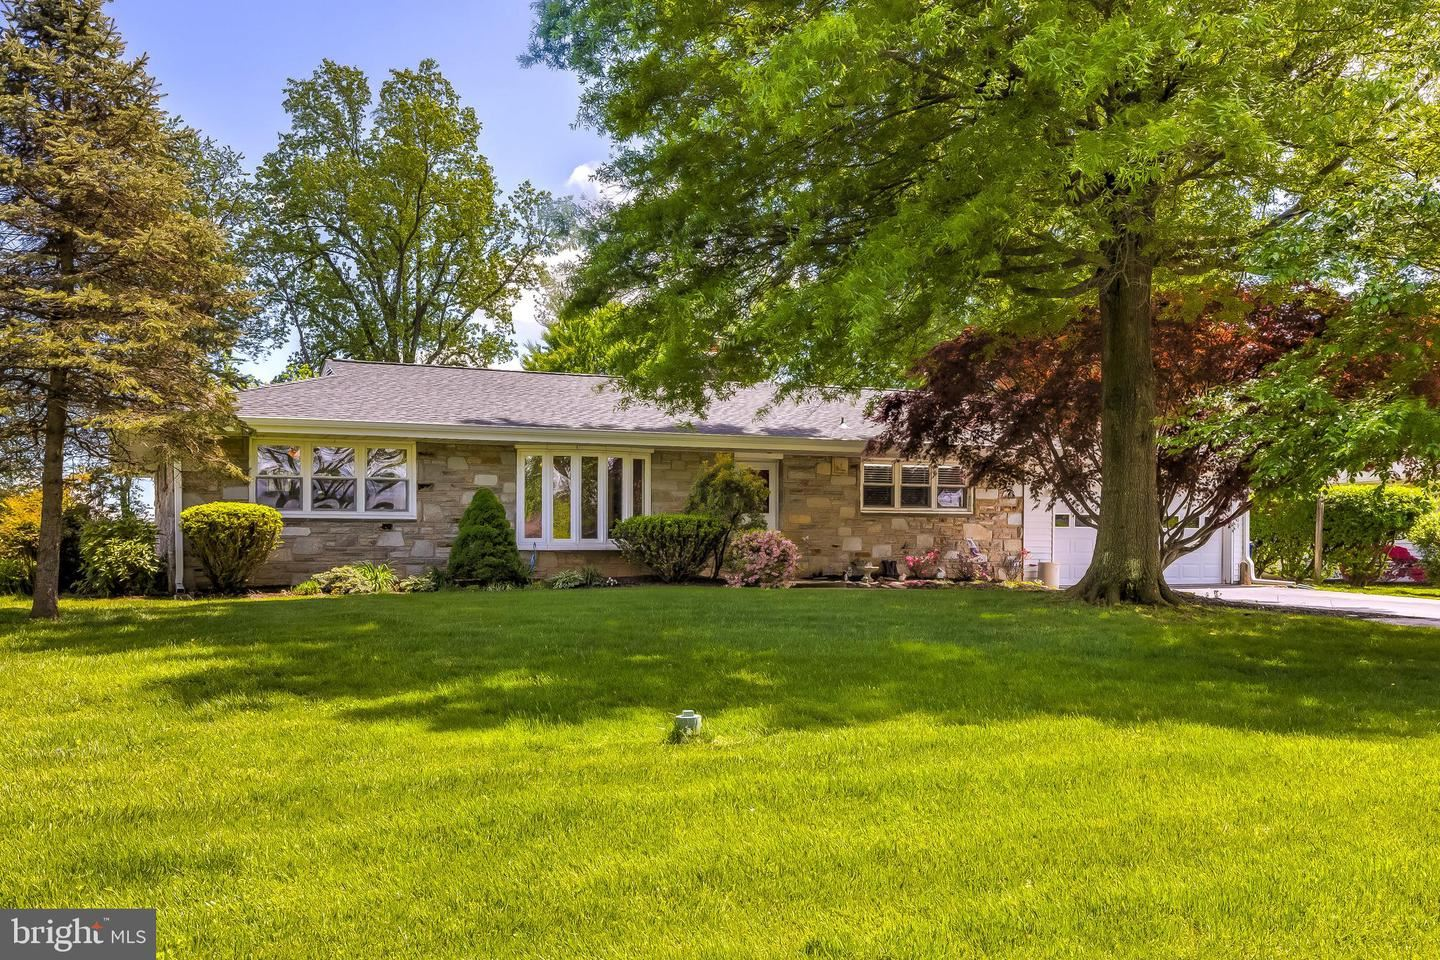 2609 ORCHARD AVE, Ellicott City, MD 21043 - MLS#: MDHW294324